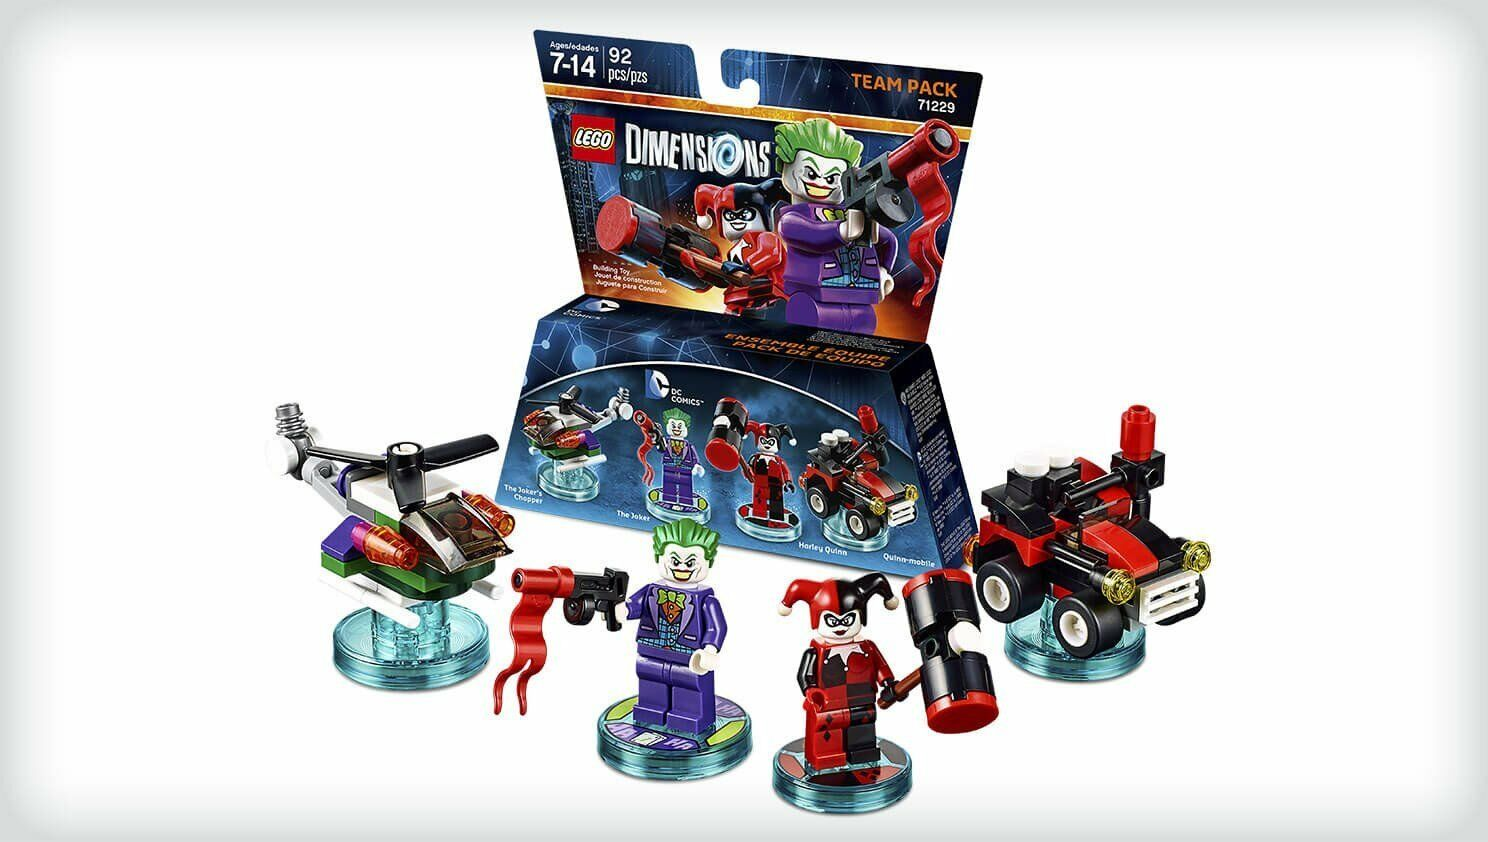 LEGO Dimensions 71229 The Joker Joker Joker Harley Quinn Batman DC Comics Figur Team Pack 282d4d